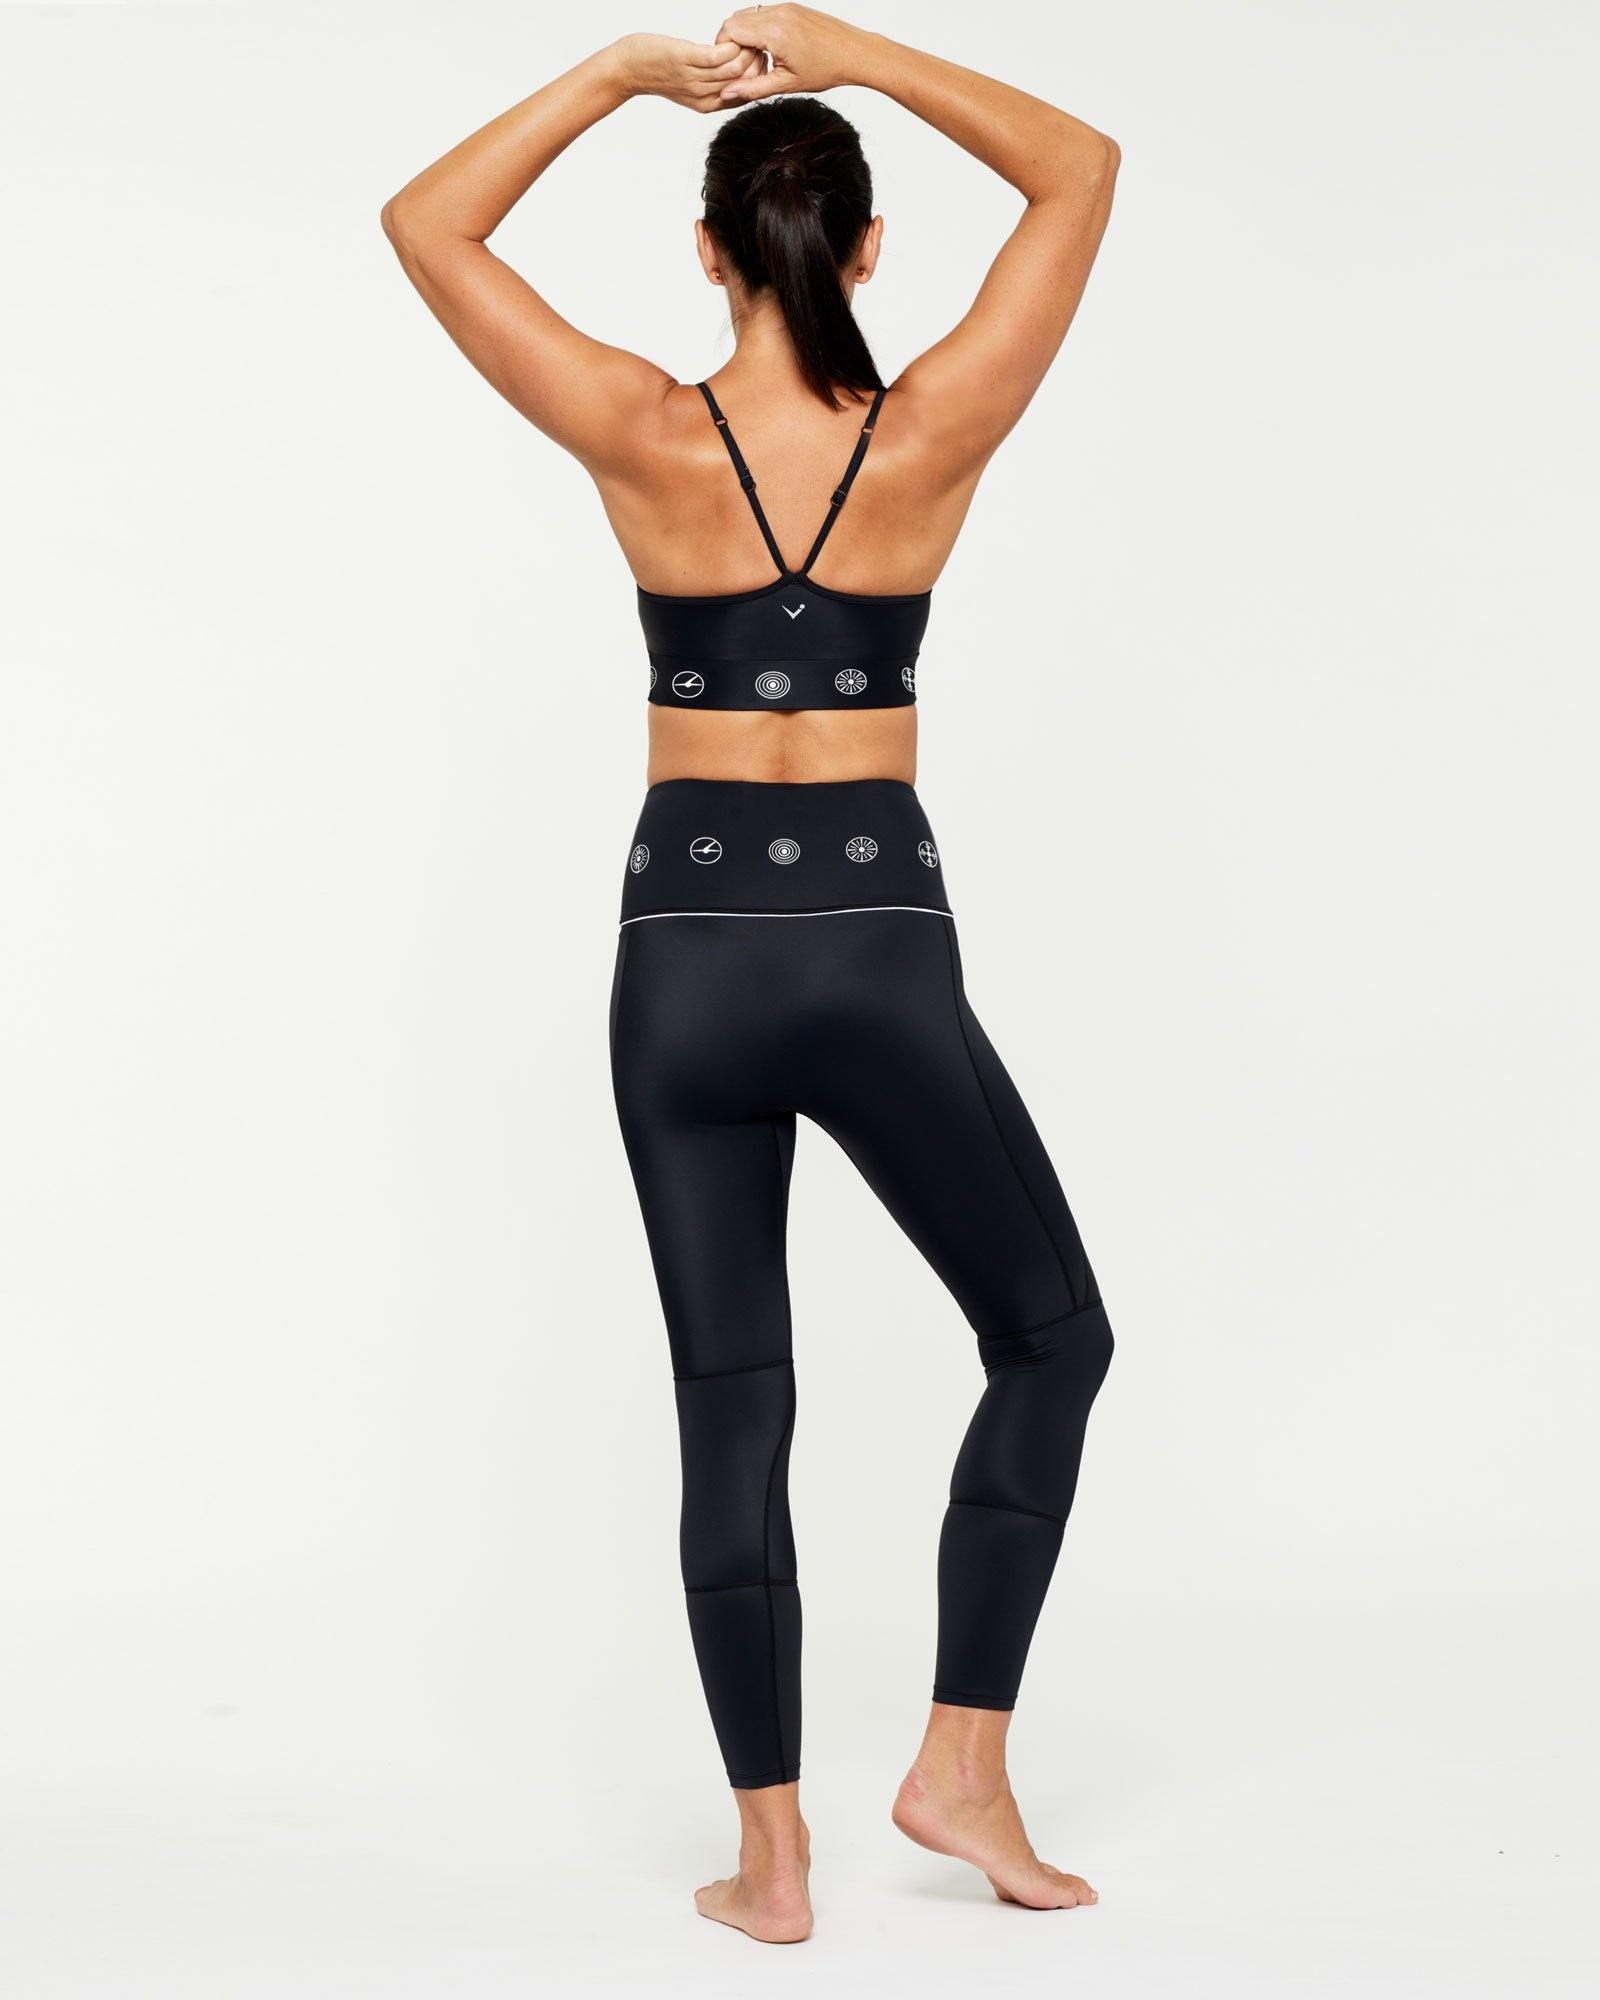 Companion GRACILIS 7/8 LEGGING BLACK WITH WHITE SYMBOLS WORN WITH INFRASPINATUS BRA TOP, CORE BACK VIEW